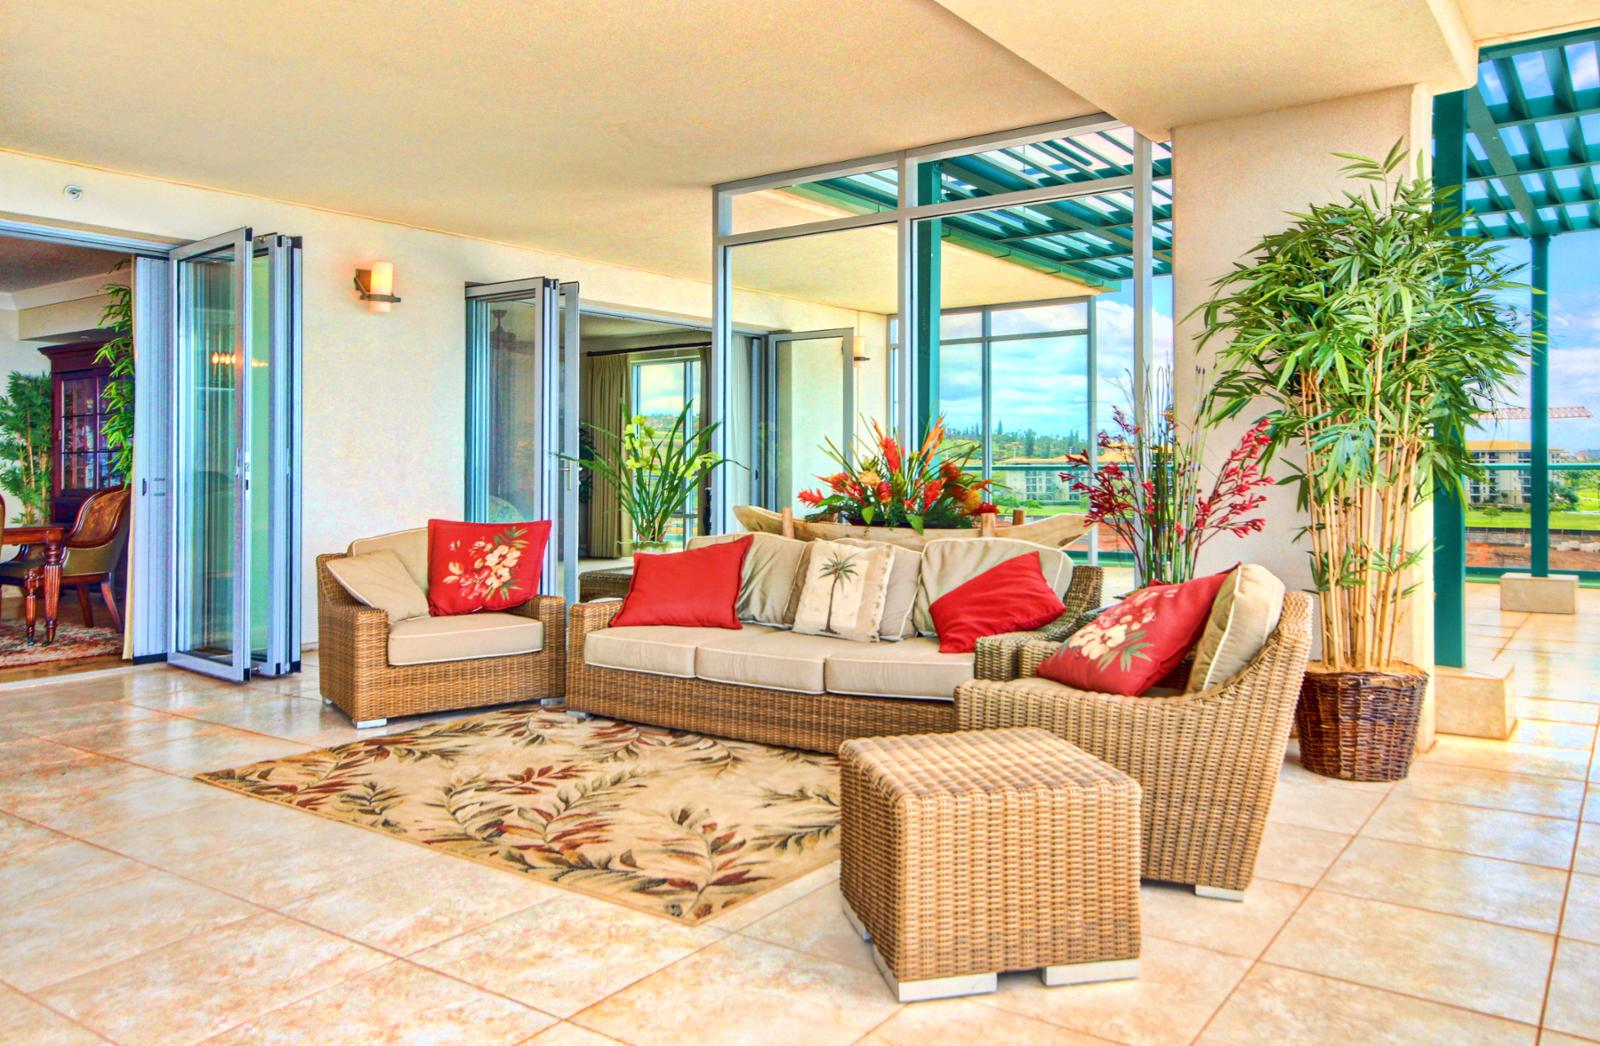 Outdoor living space you can enjoy the fresh Maui breezes.